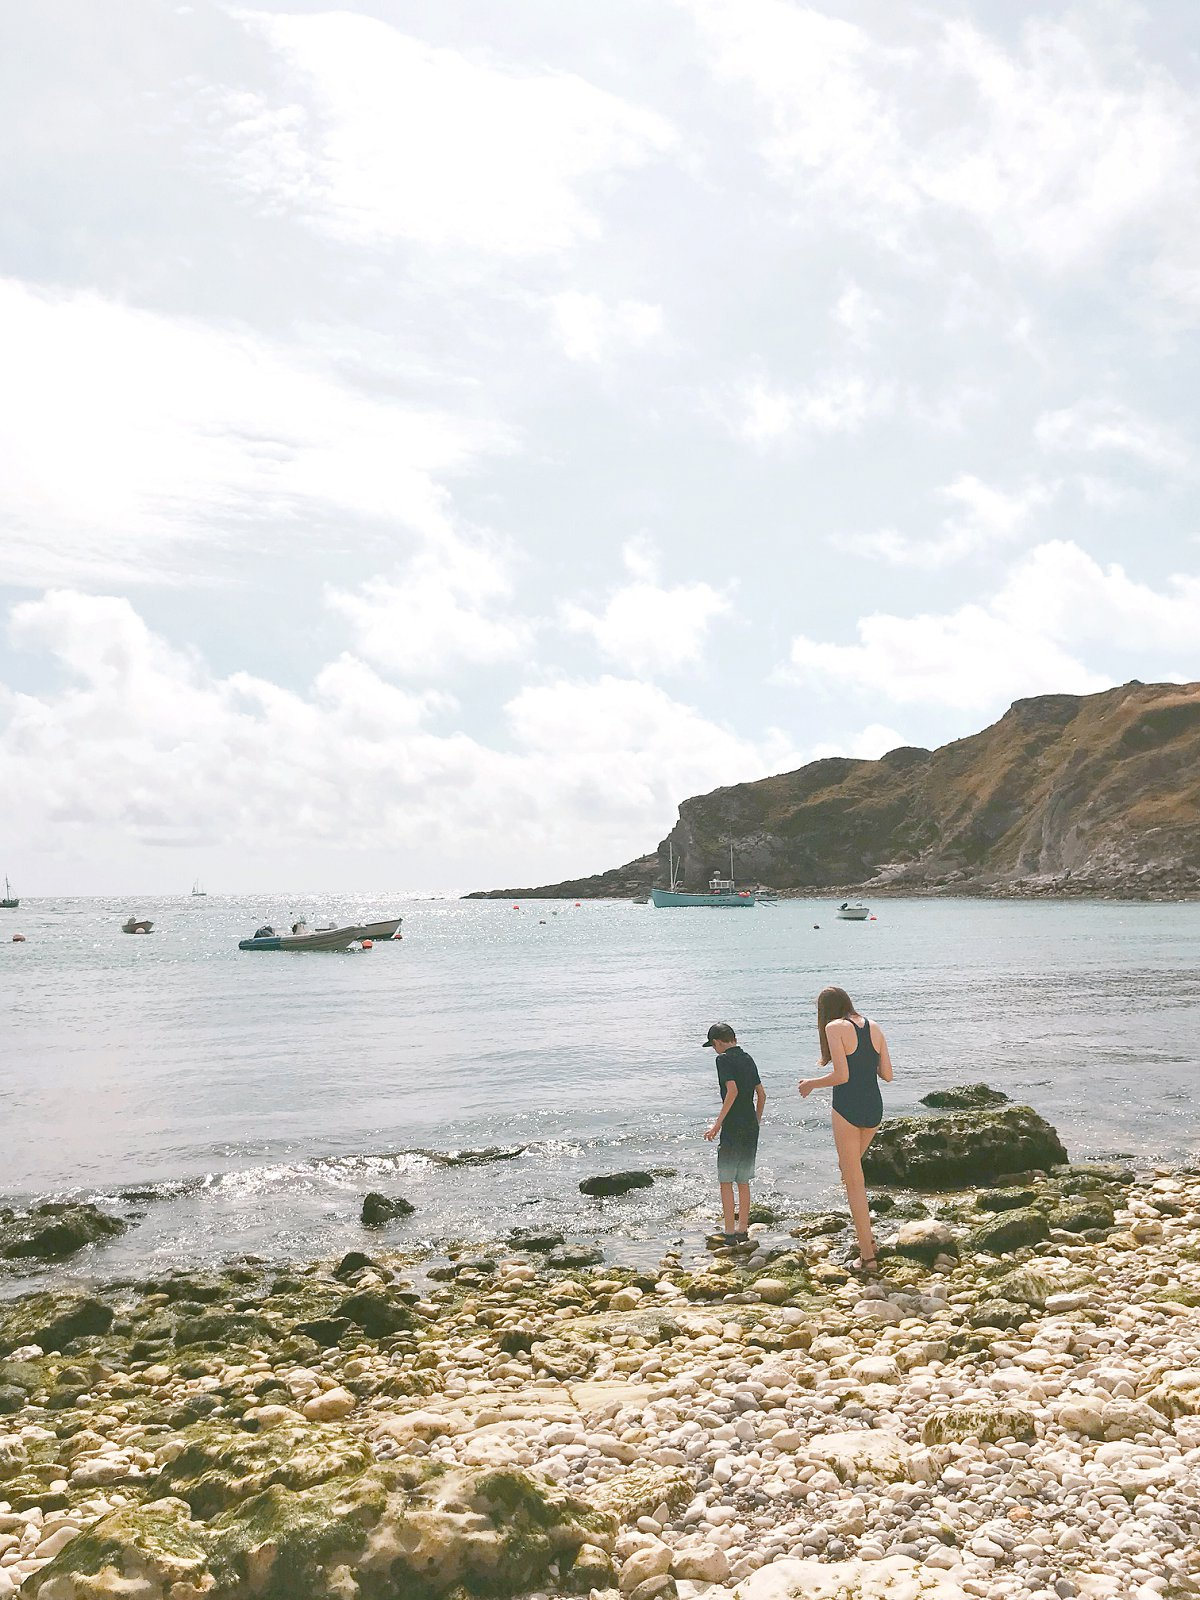 Children playing at Hope Cove